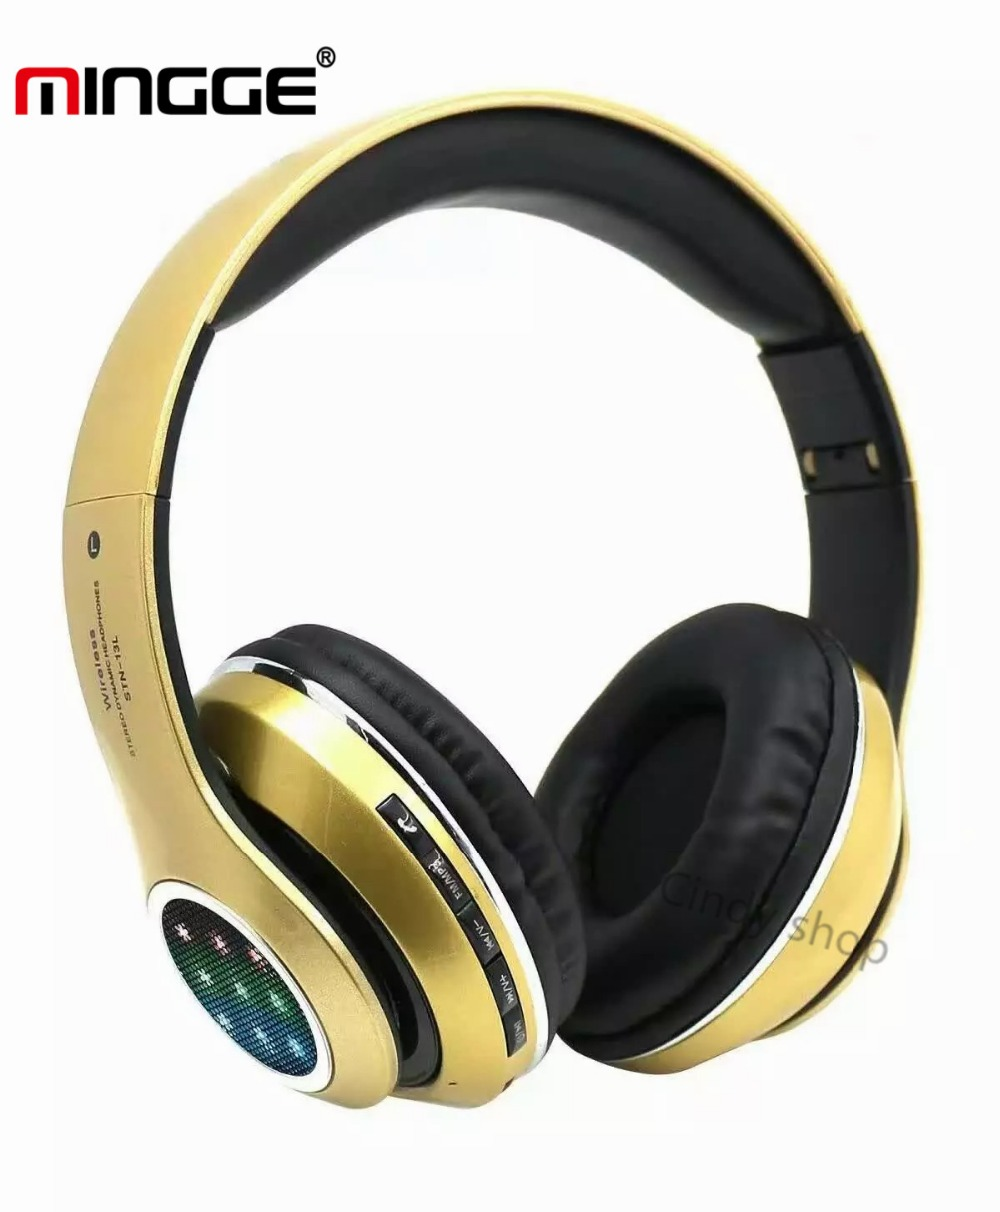 Original STN-13L Deep Bass Wireless Stereo Bluetooth Headphone Noise Cancelling Headset Mic TF Card FM Radio Earphone - Cindy's Store store